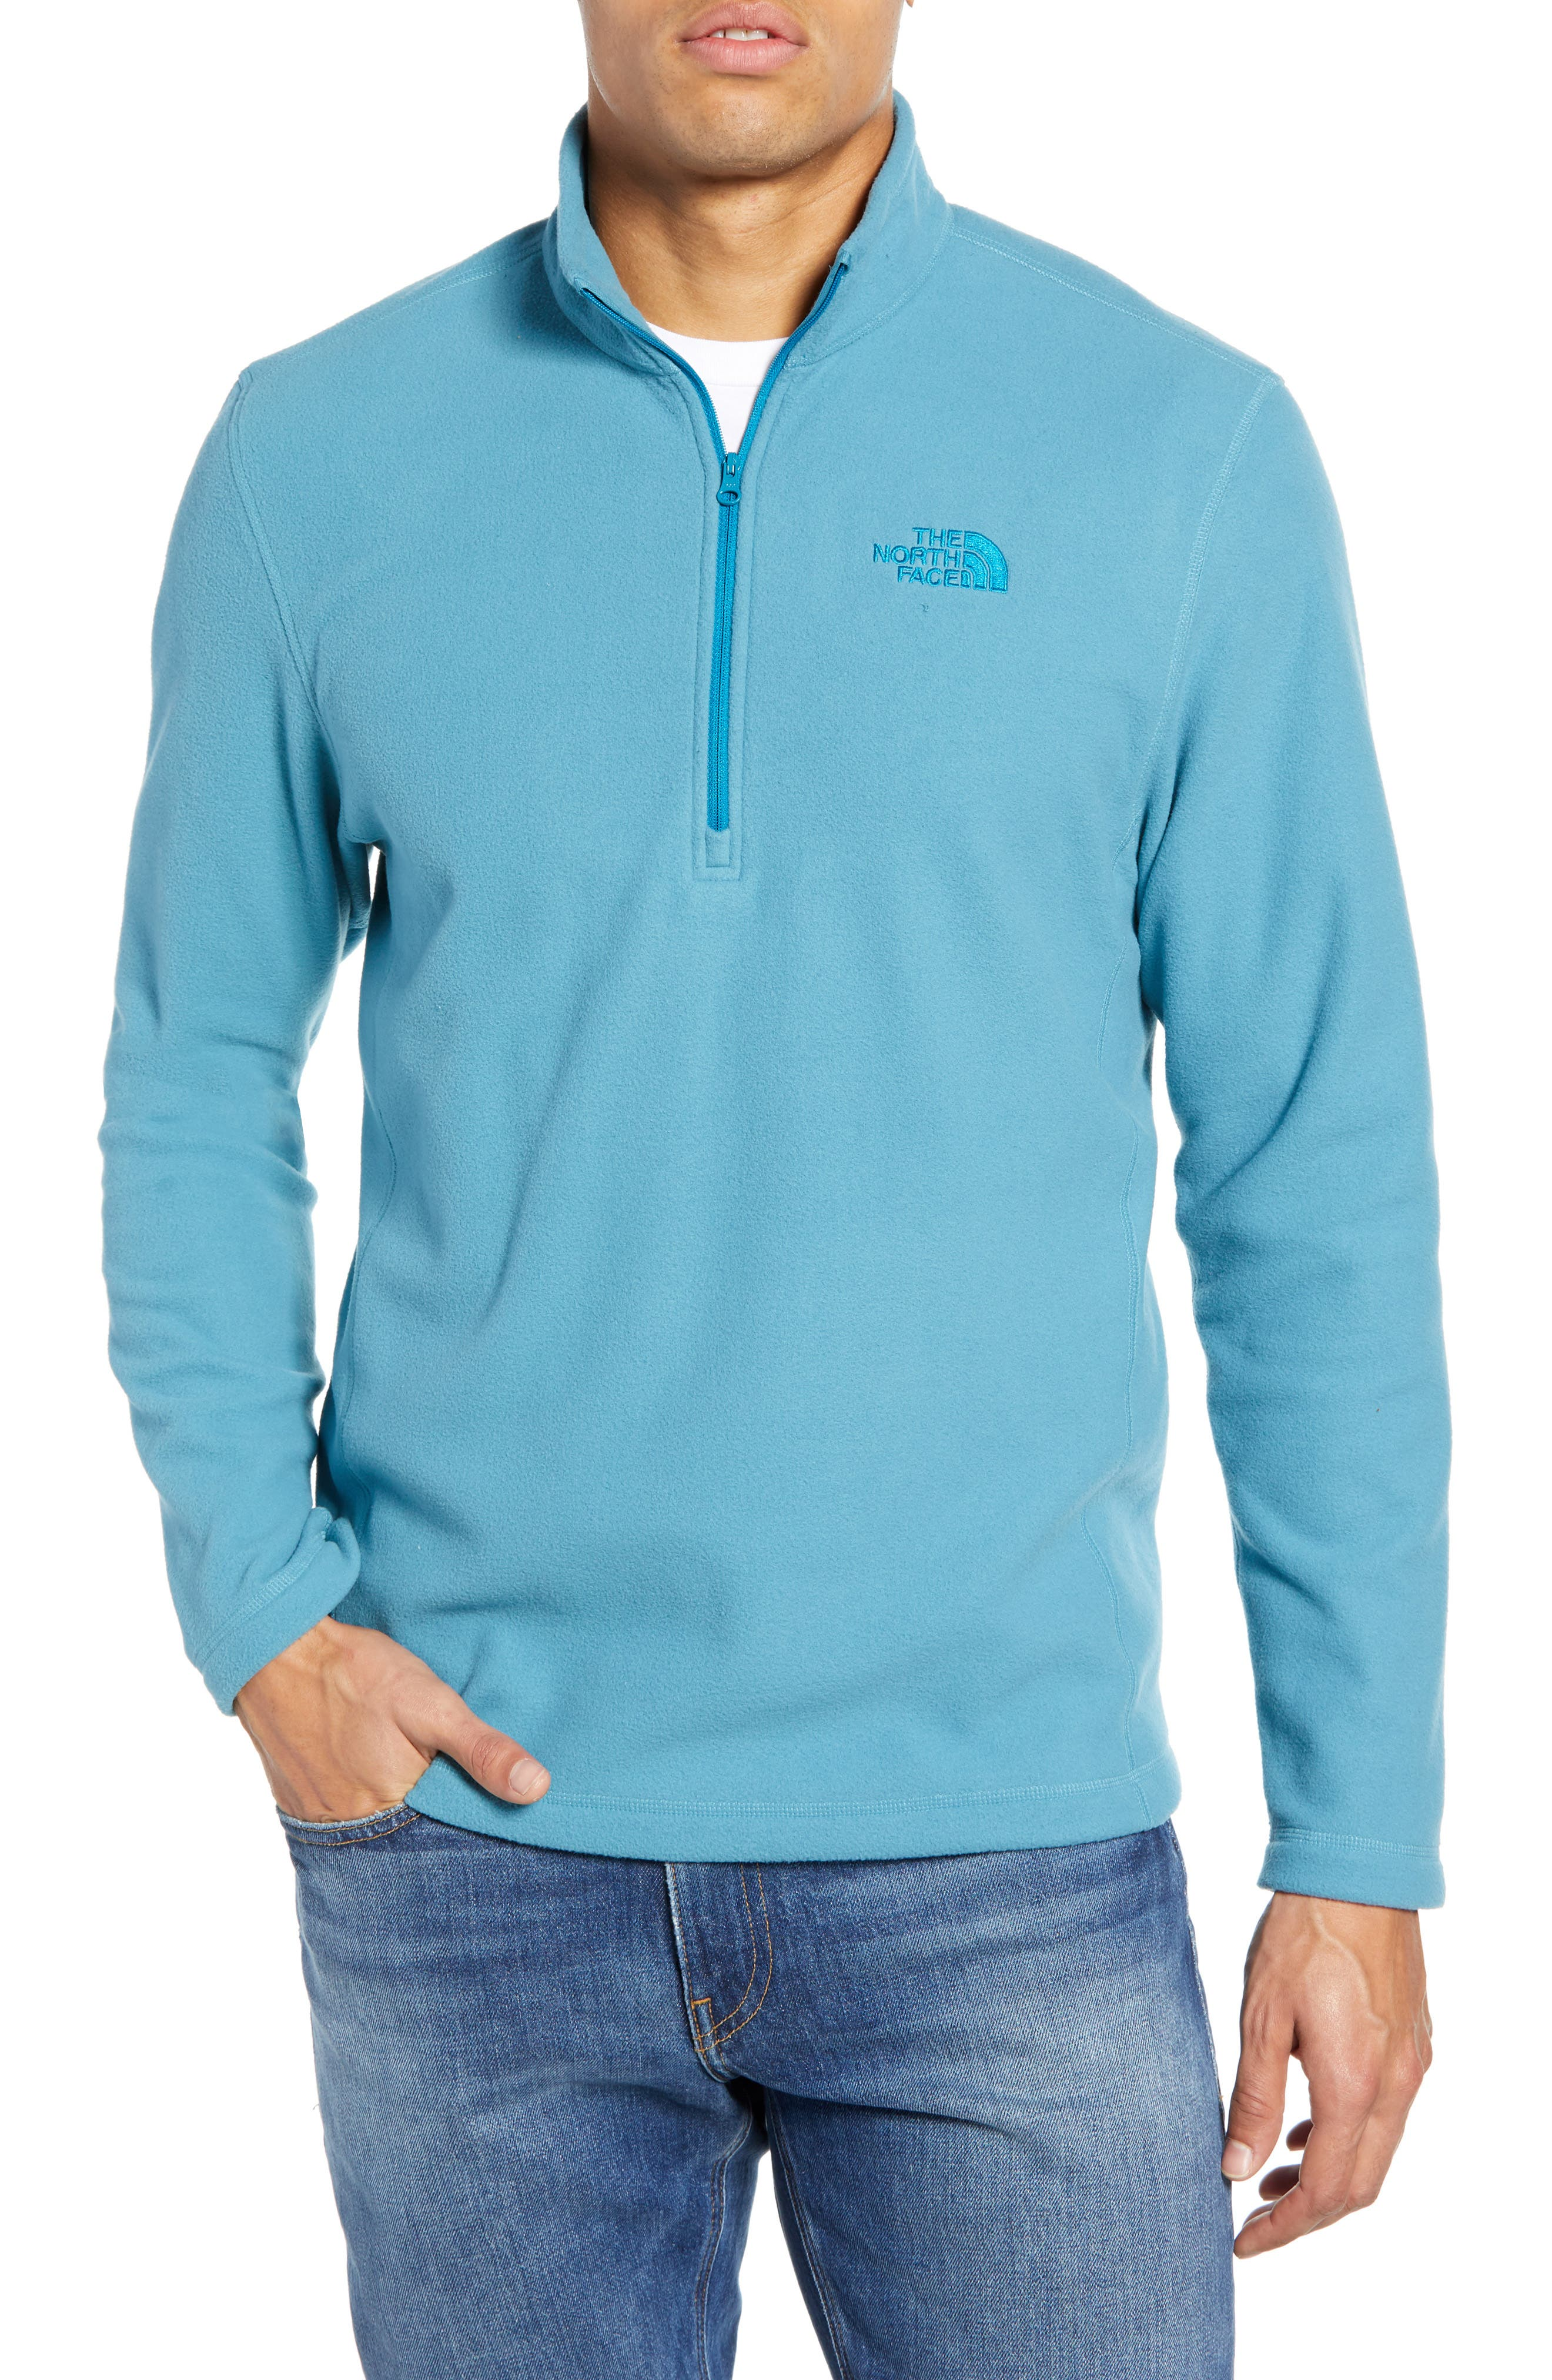 THE NORTH FACE 'TKA 100 Glacier' Quarter Zip Fleece Pullover, Main, color, AZTEC BLUE